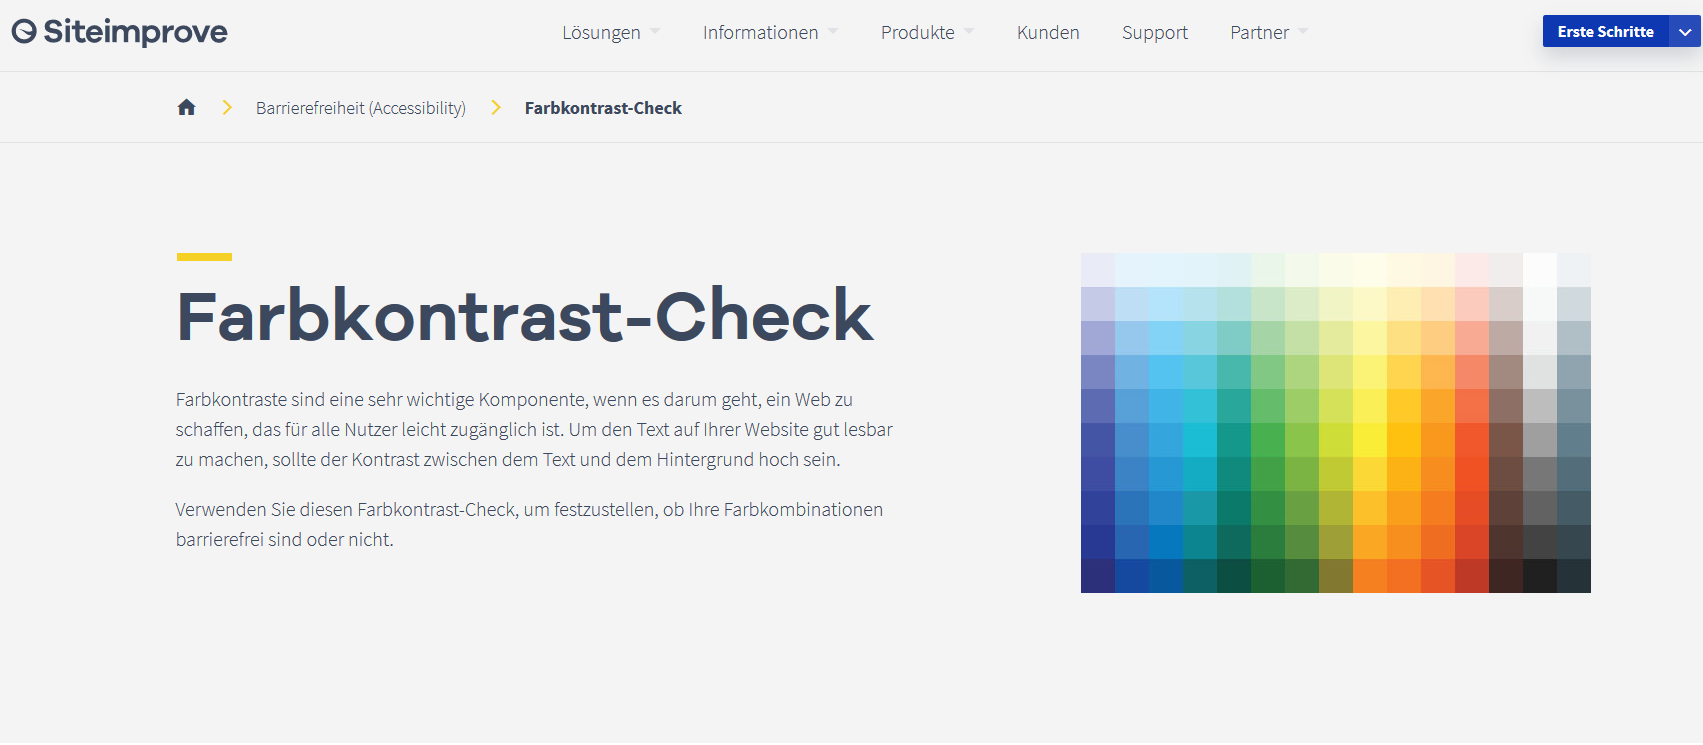 Screenshot Siteimprove Farbkontrast-Checker